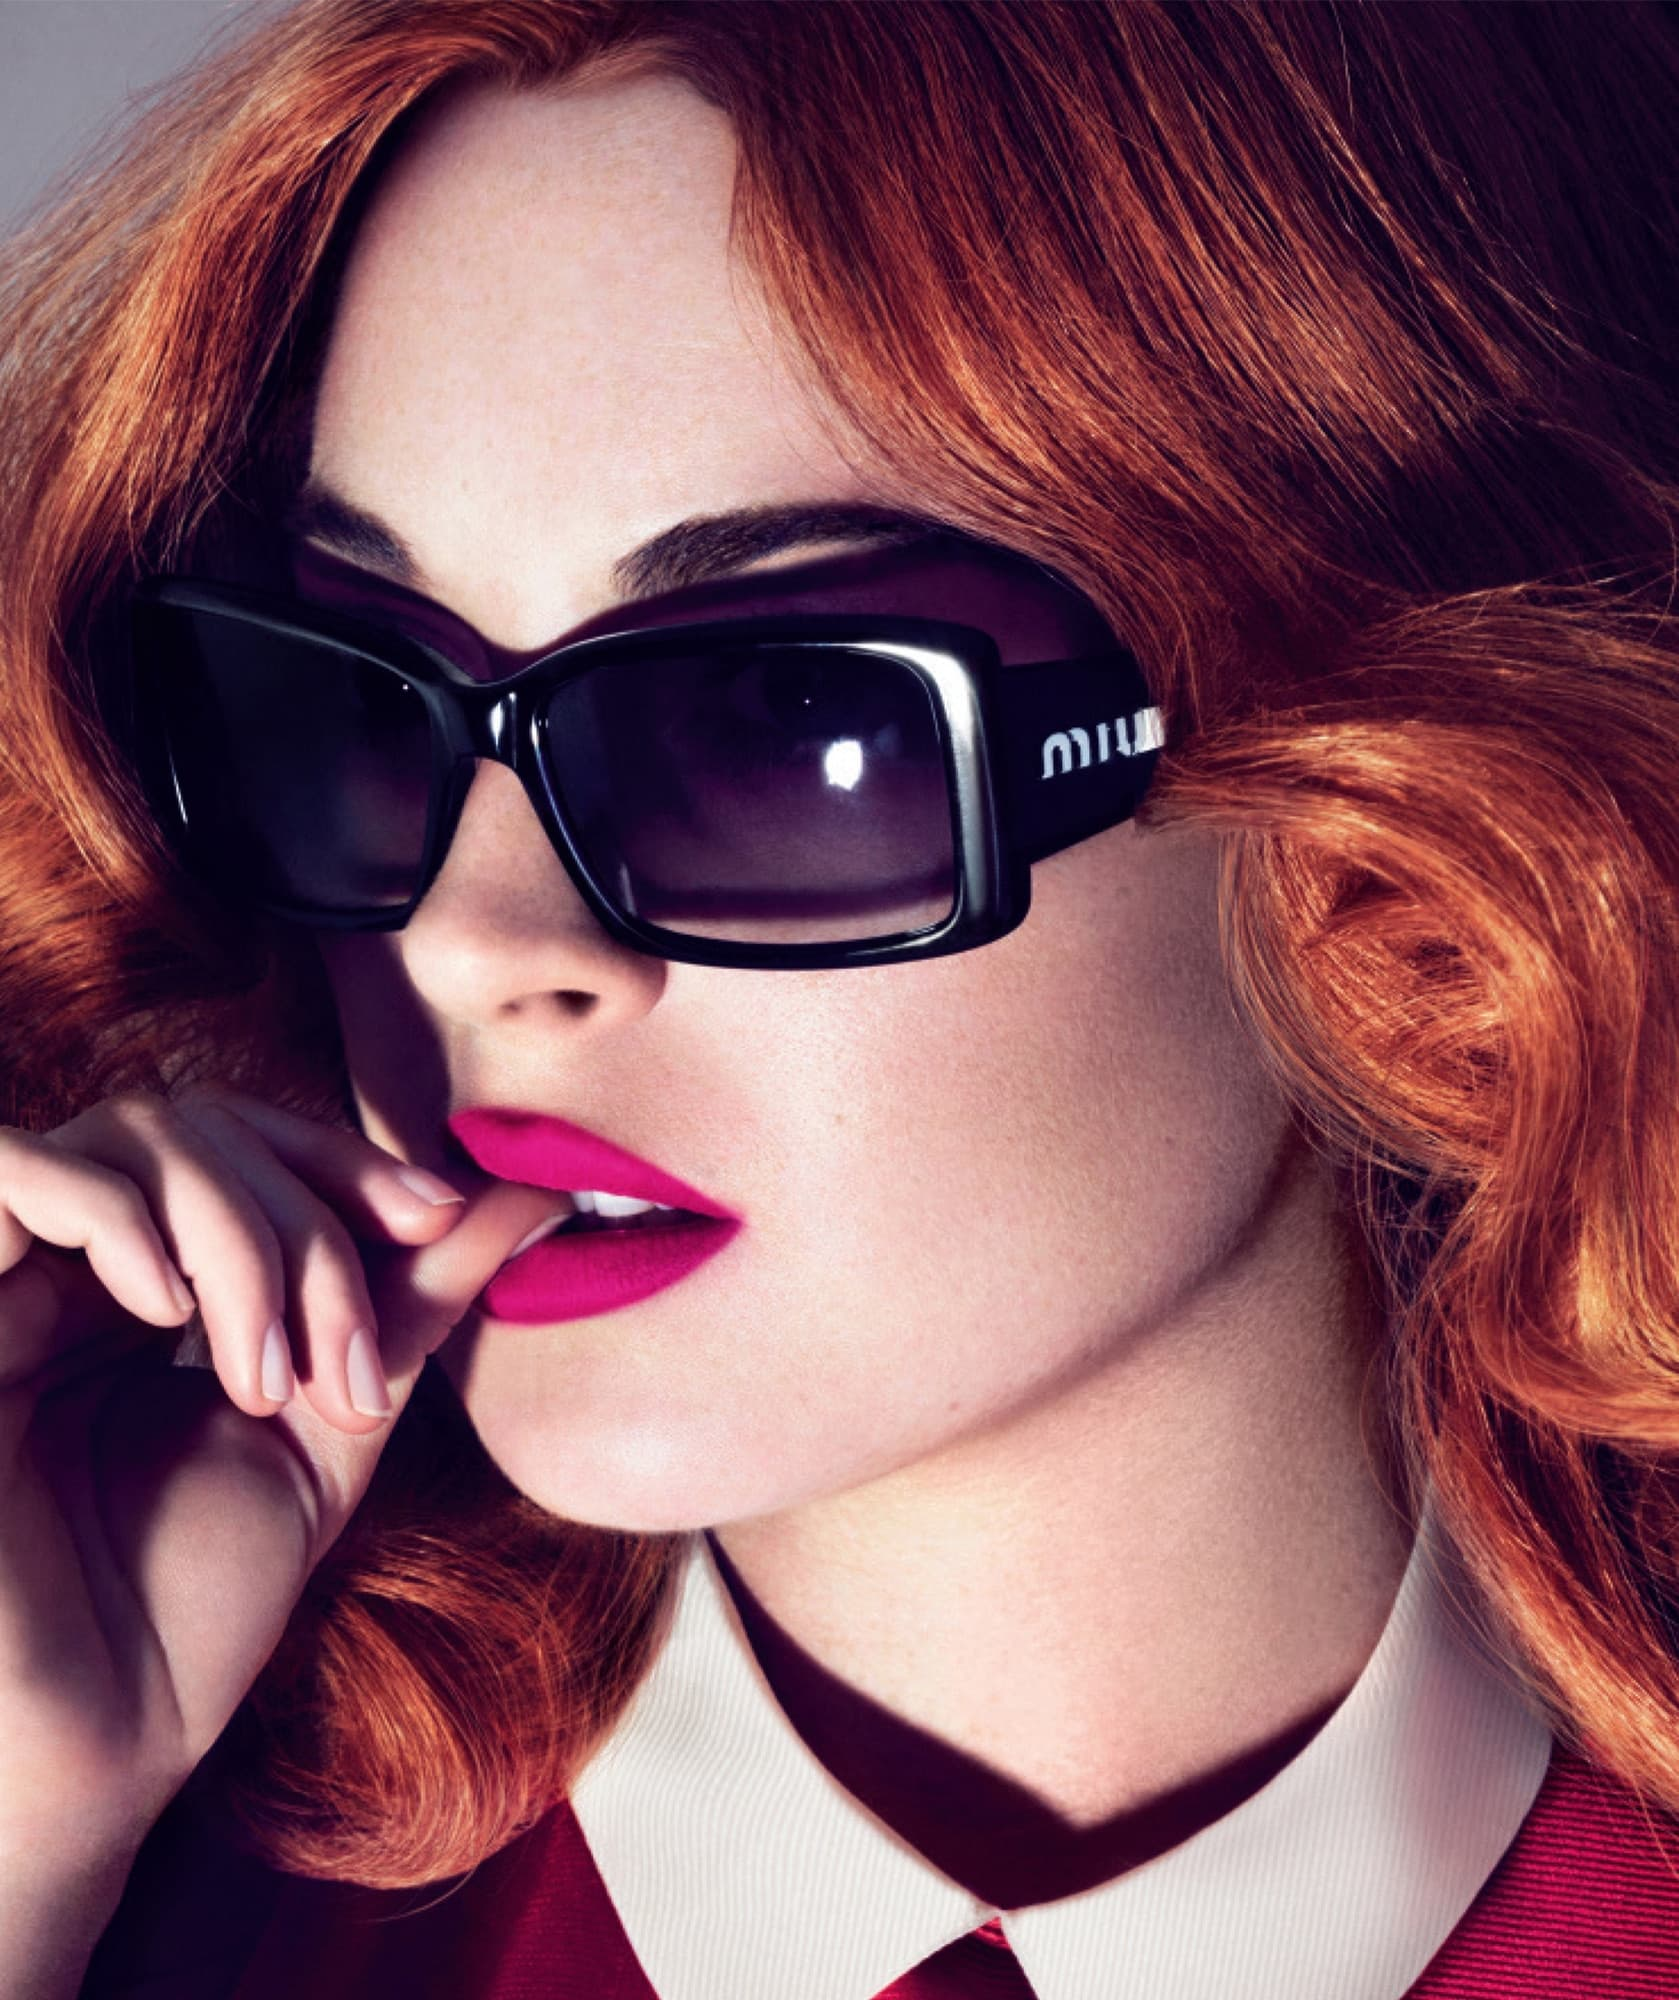 fashion news The iconic Miu Miu sunglasses on actress Lindsay Lohan for their  Spring Summer 2007 campaign. aaf64ae86084